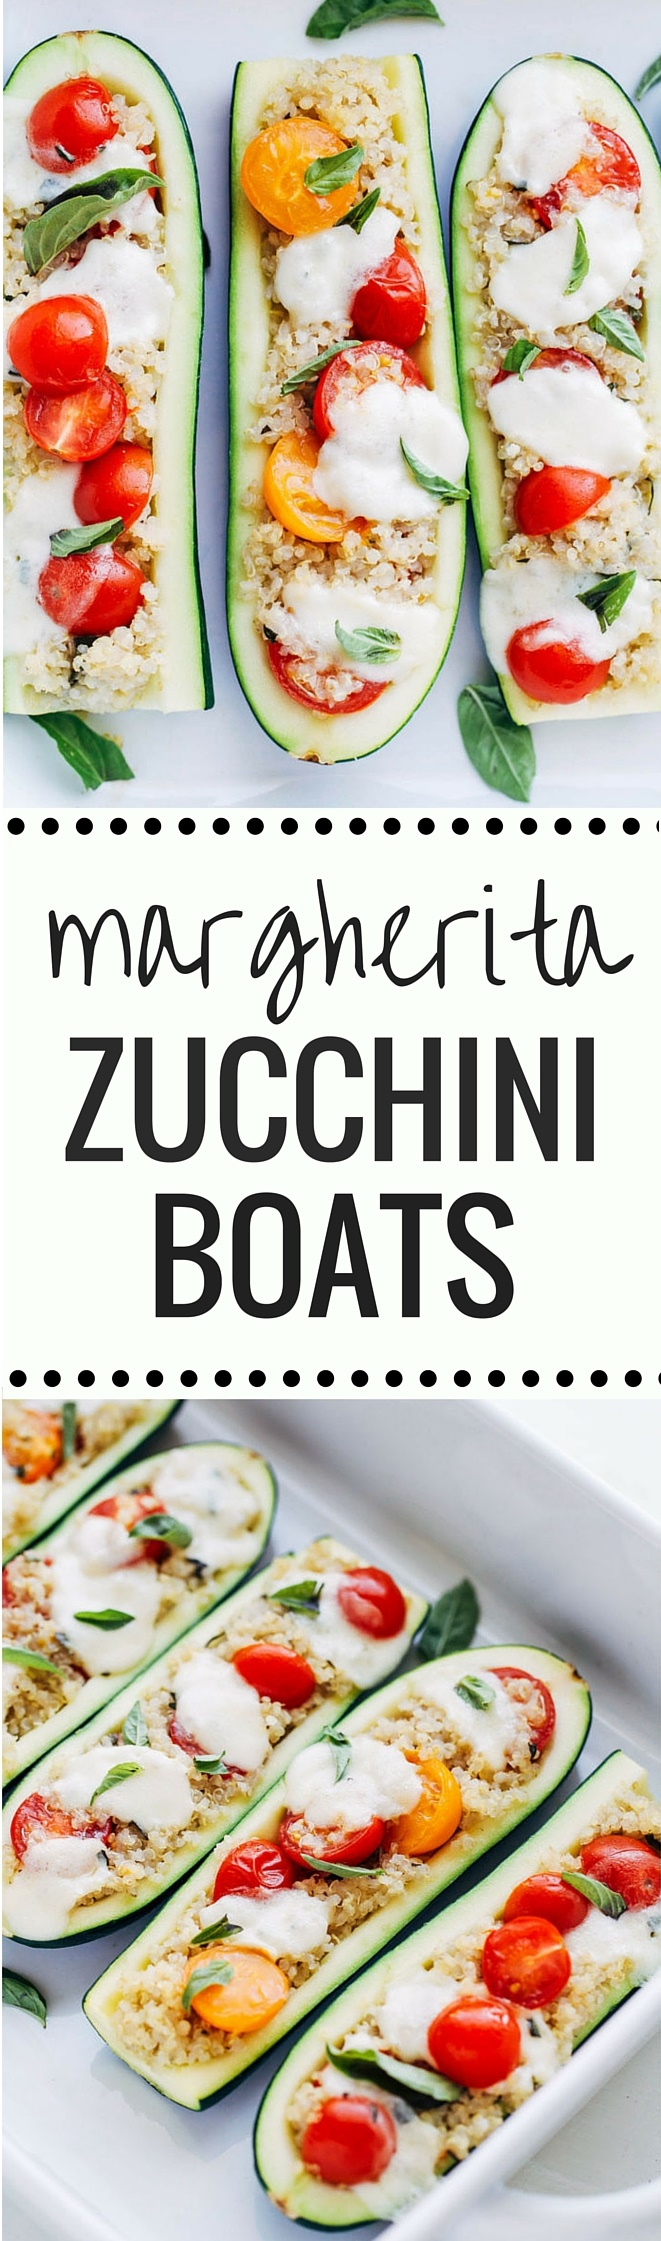 Margherita Zucchini Boats- a light and healthy take on the delicious Margherita Pizza. One serving has just 260 calories + 16 grams of protein! (gluten-free + vegetarian with vegan option)